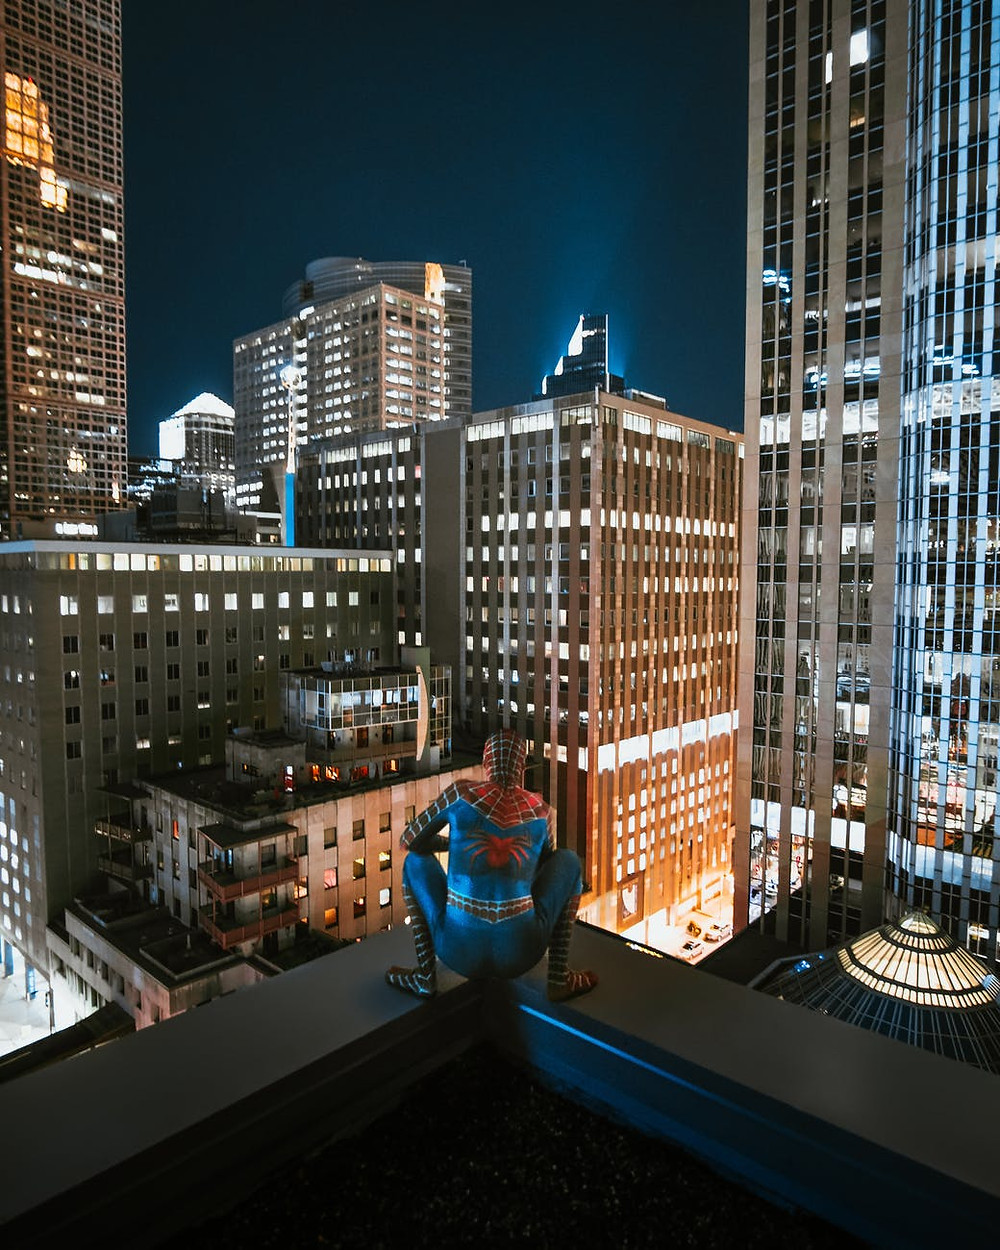 Spider-Man overlooking the city